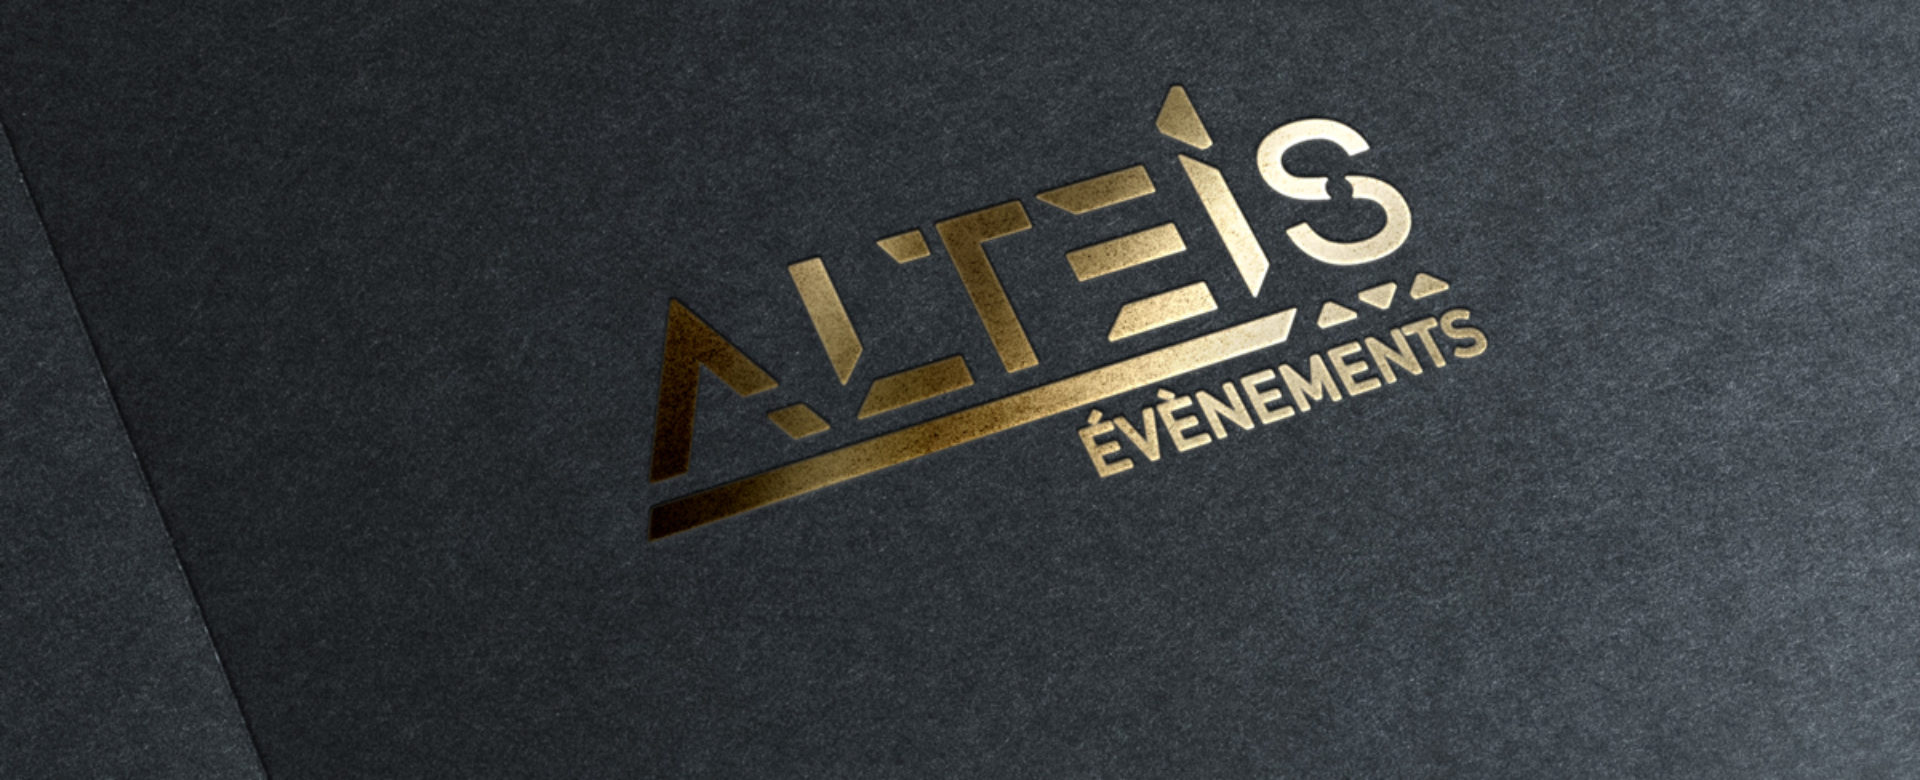 alteis-evenement-mockup-gold